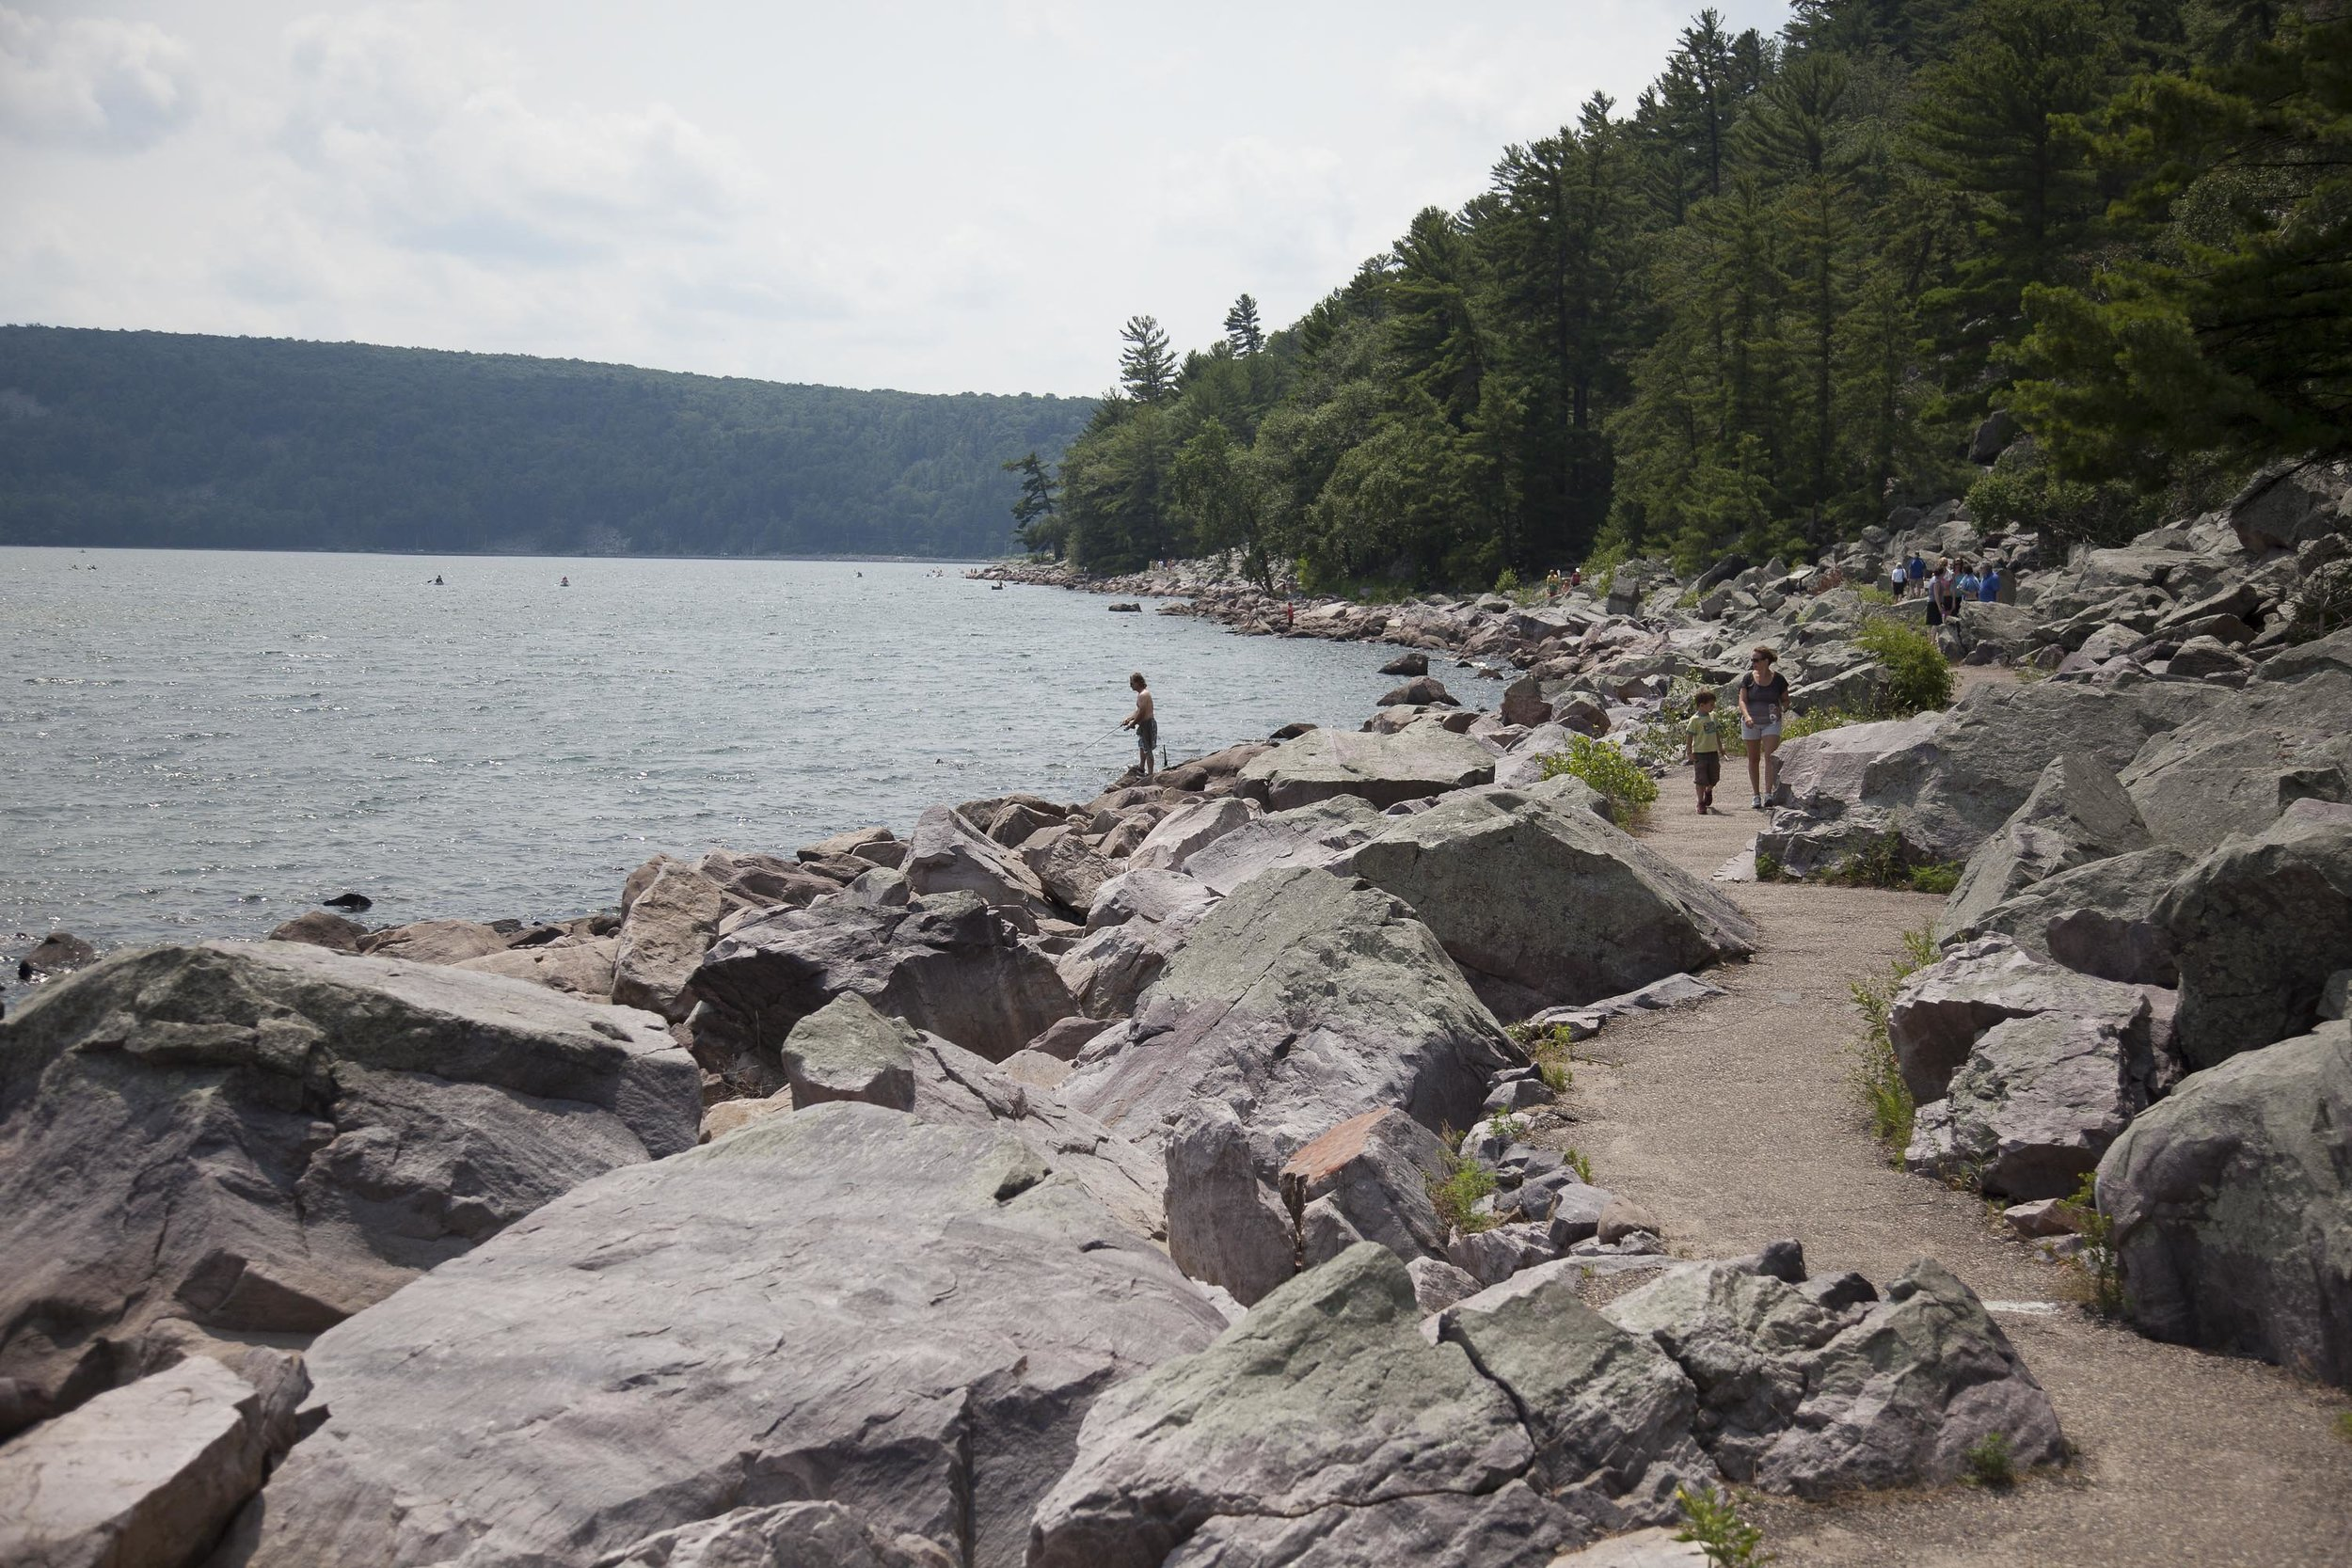 The Tumbled Rocks Trail is a popular, scenic,and easy hike from the North Shore of Devils Lake.